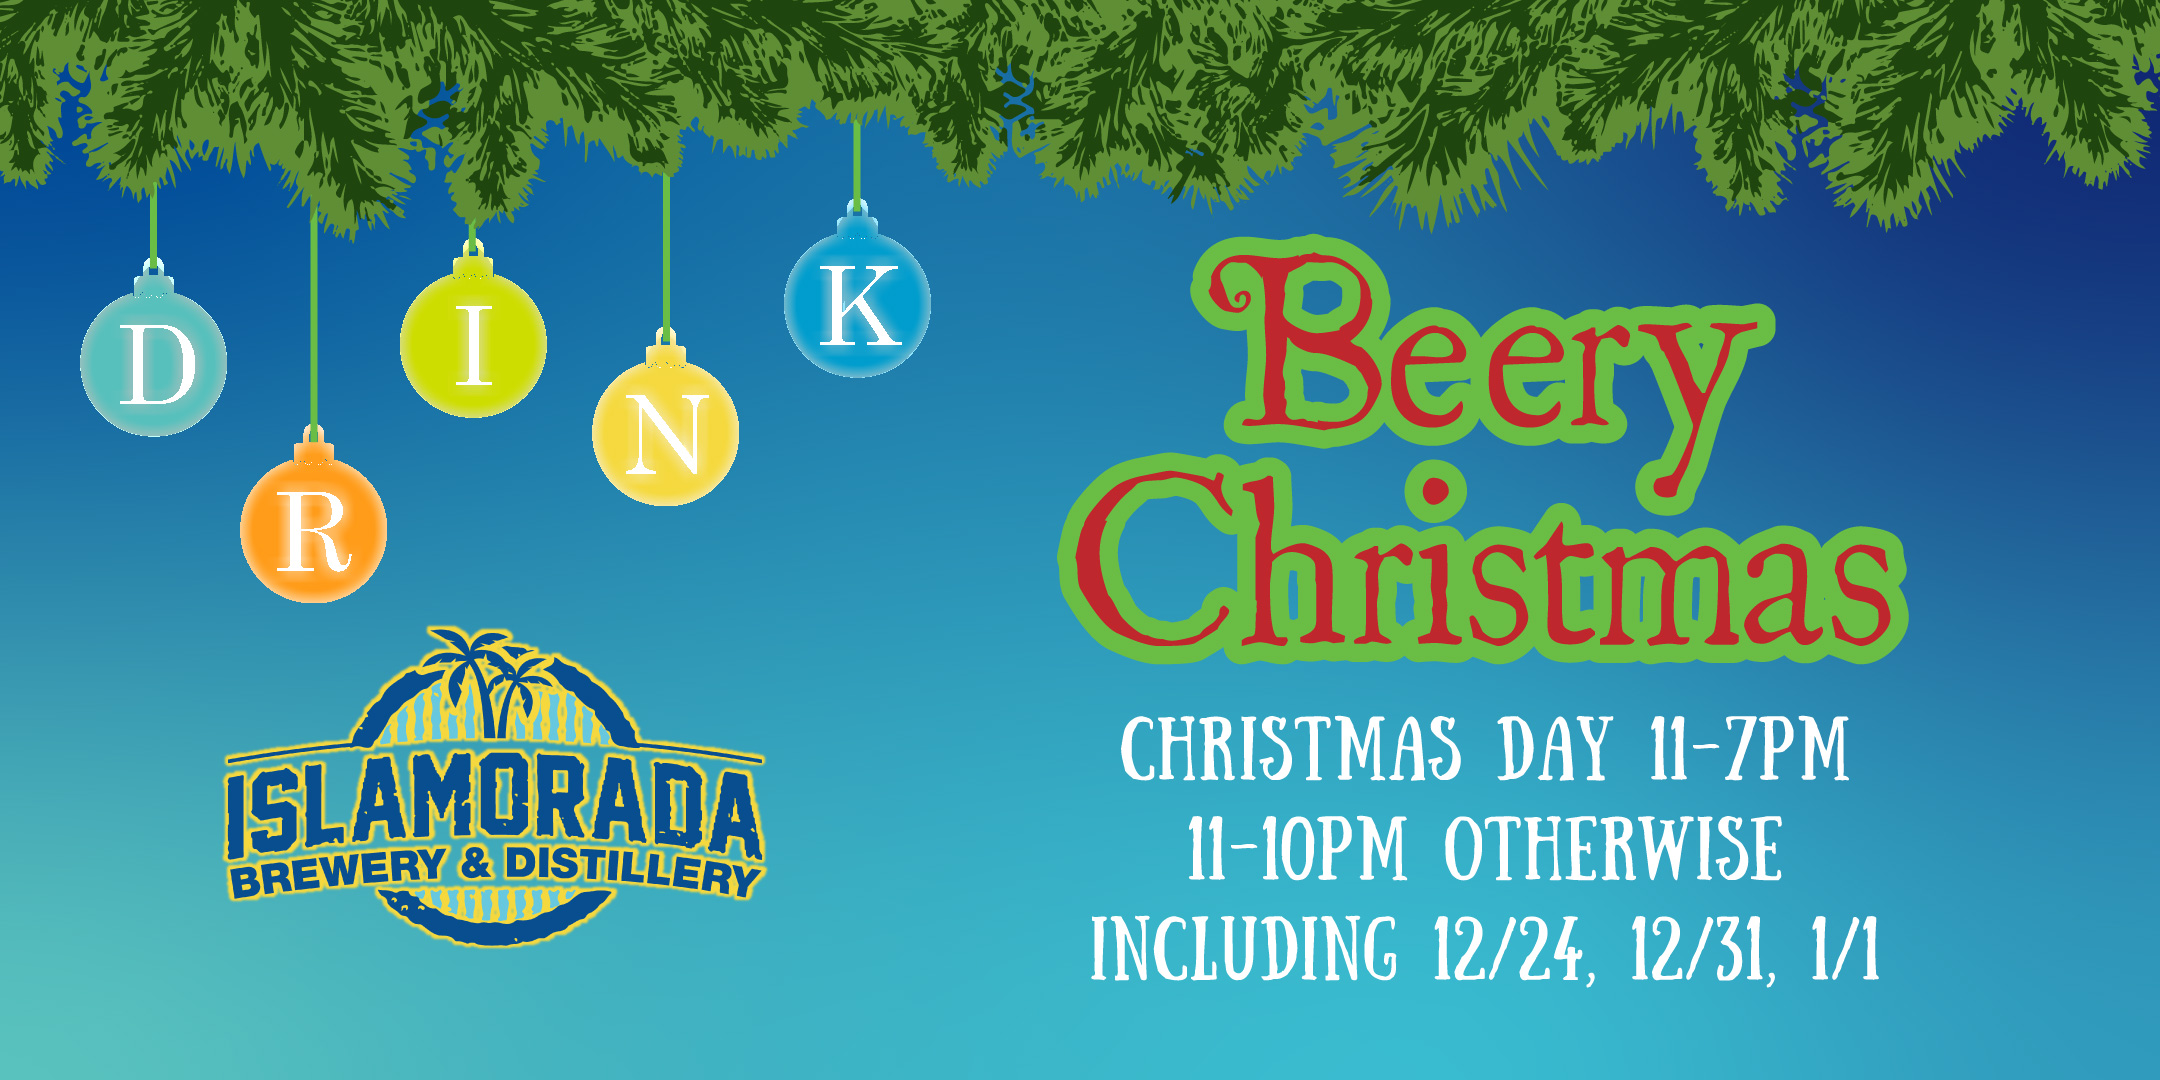 Christmas Hours Drinking Islamorada Brewery Distillery Florida Keys